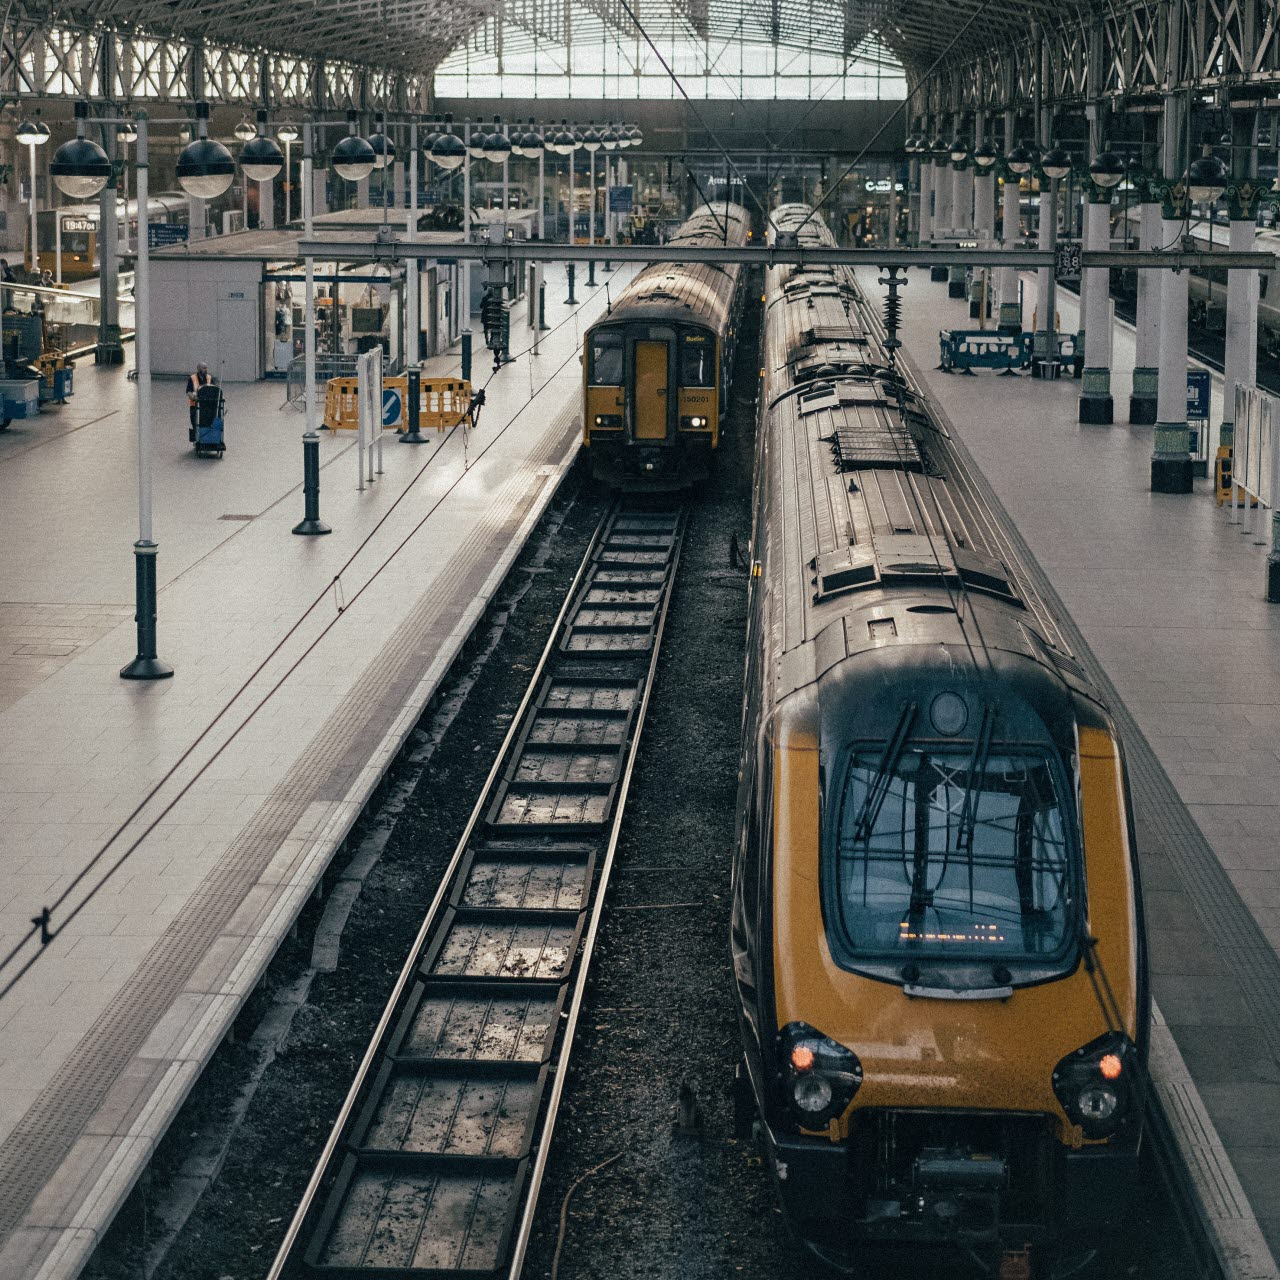 trains-leeds-uk-unsplash